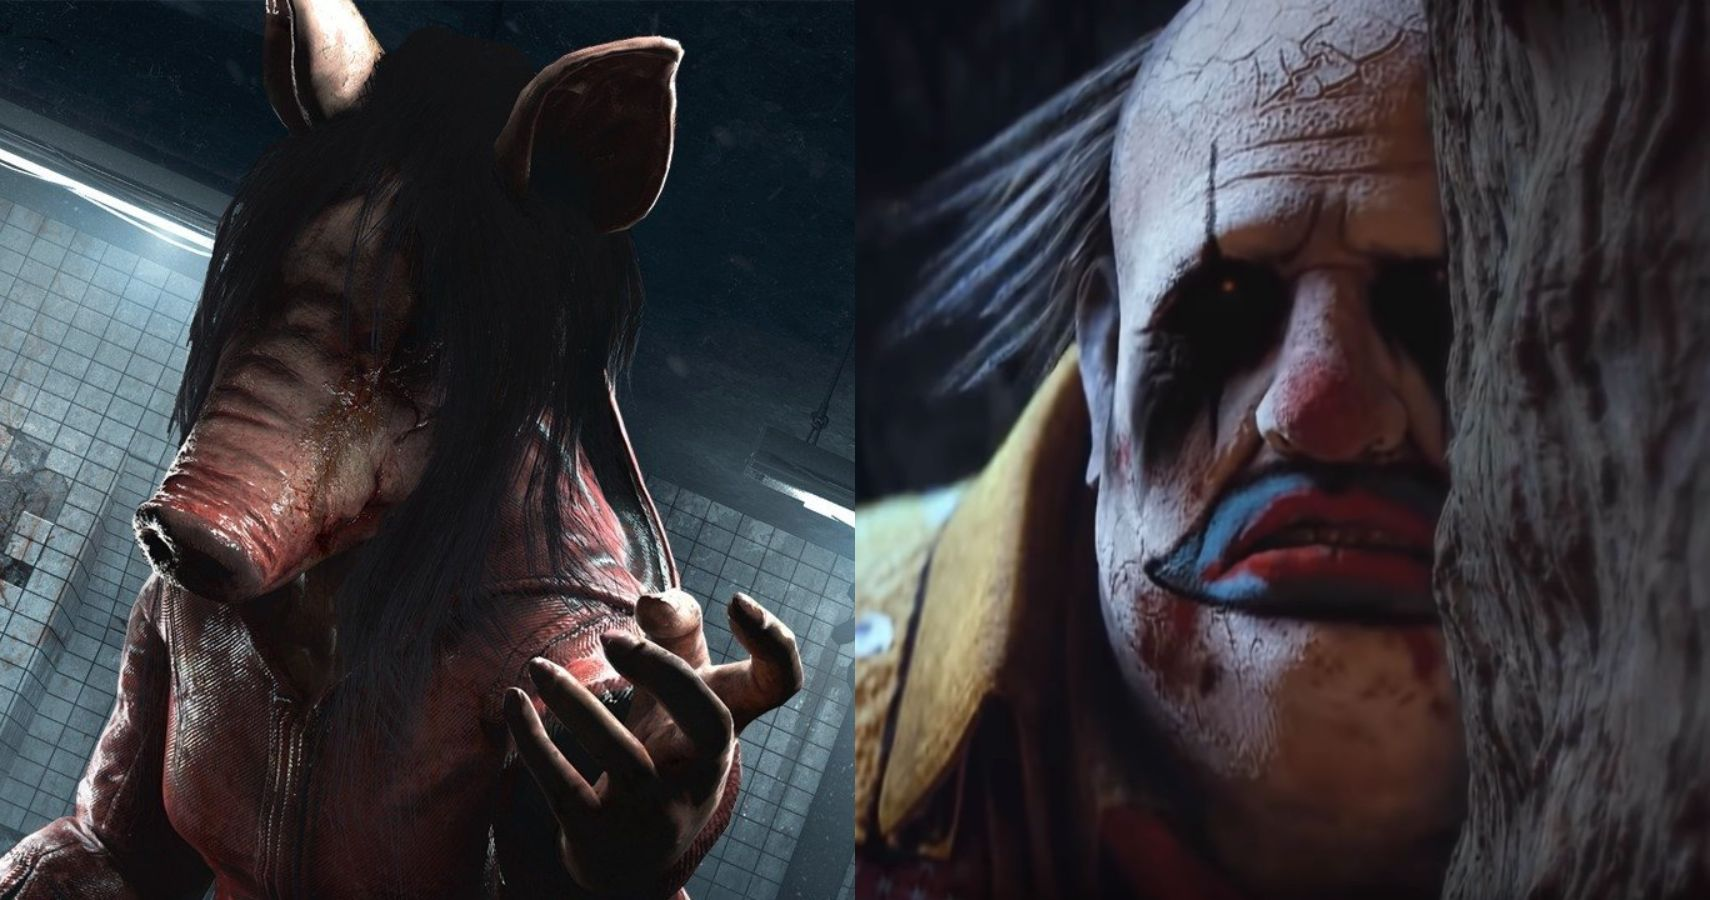 All of the Dead by Daylight Killers, Ranked | TheGamer